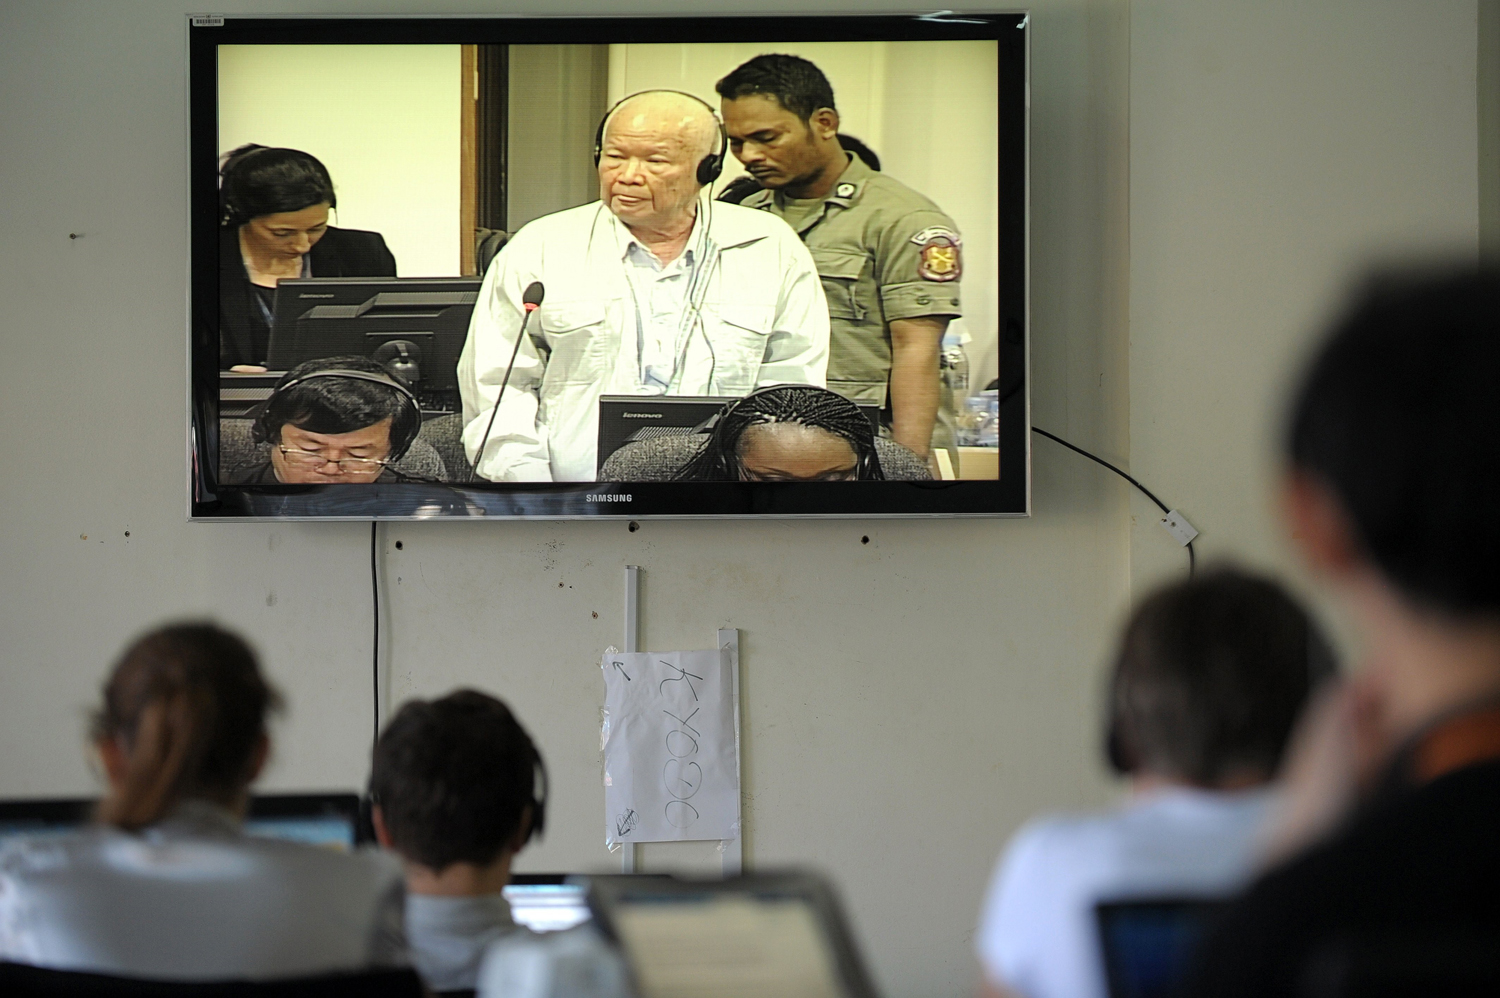 Cambodian and international journalists watch a live video feed showing former Khmer Rouge head of state Khieu Samphan during a hearing for his trial at the Extraordinary Chamber in the Courts of Cambodia in Phnom Penh on Jan. 8, 2015